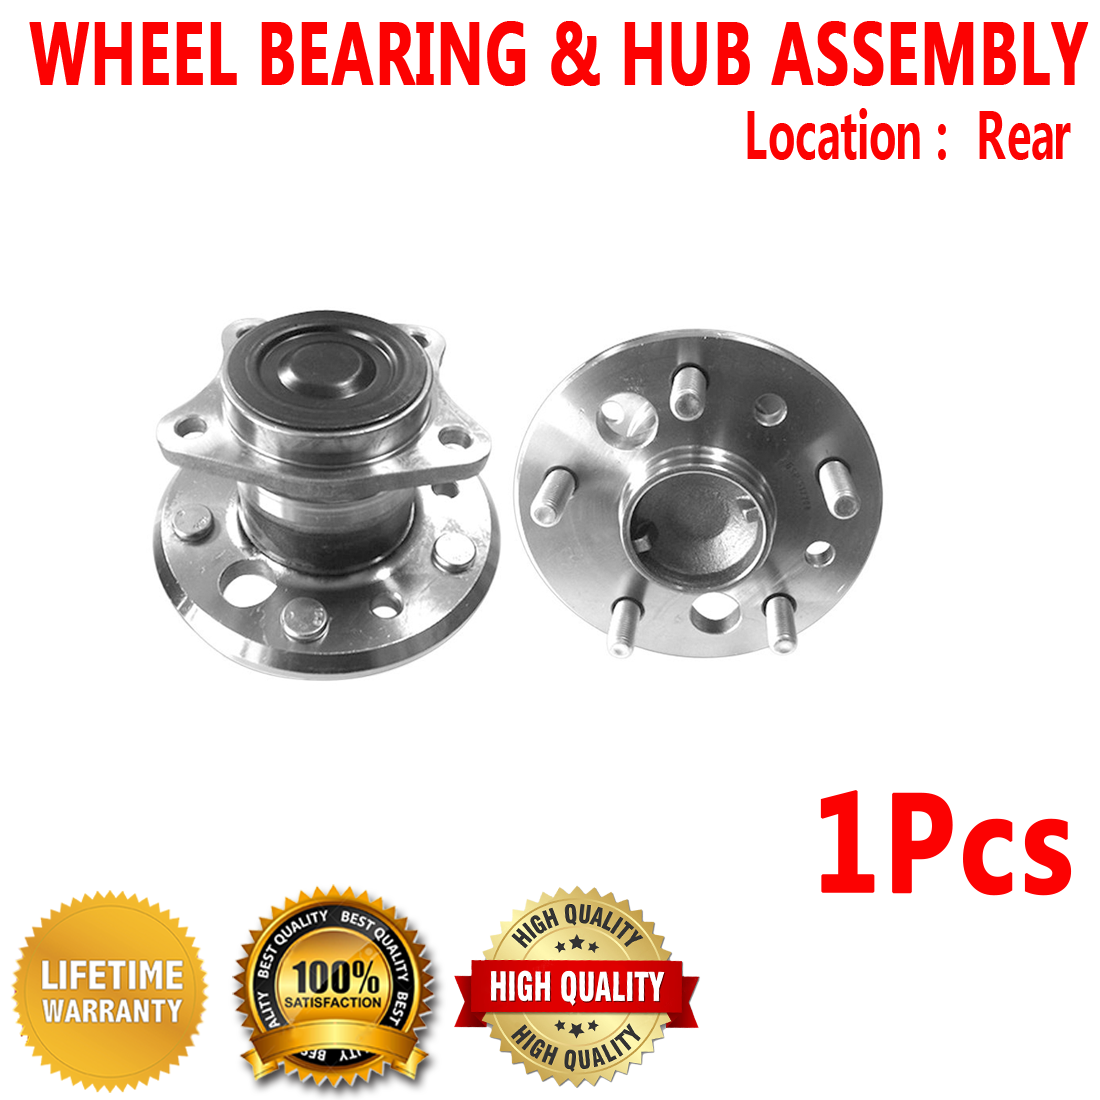 Note: FWD 2007 fits Toyota Camry Rear Left Wheel Bearing and Hub Assembly One Bearing Included with Two Years Warranty